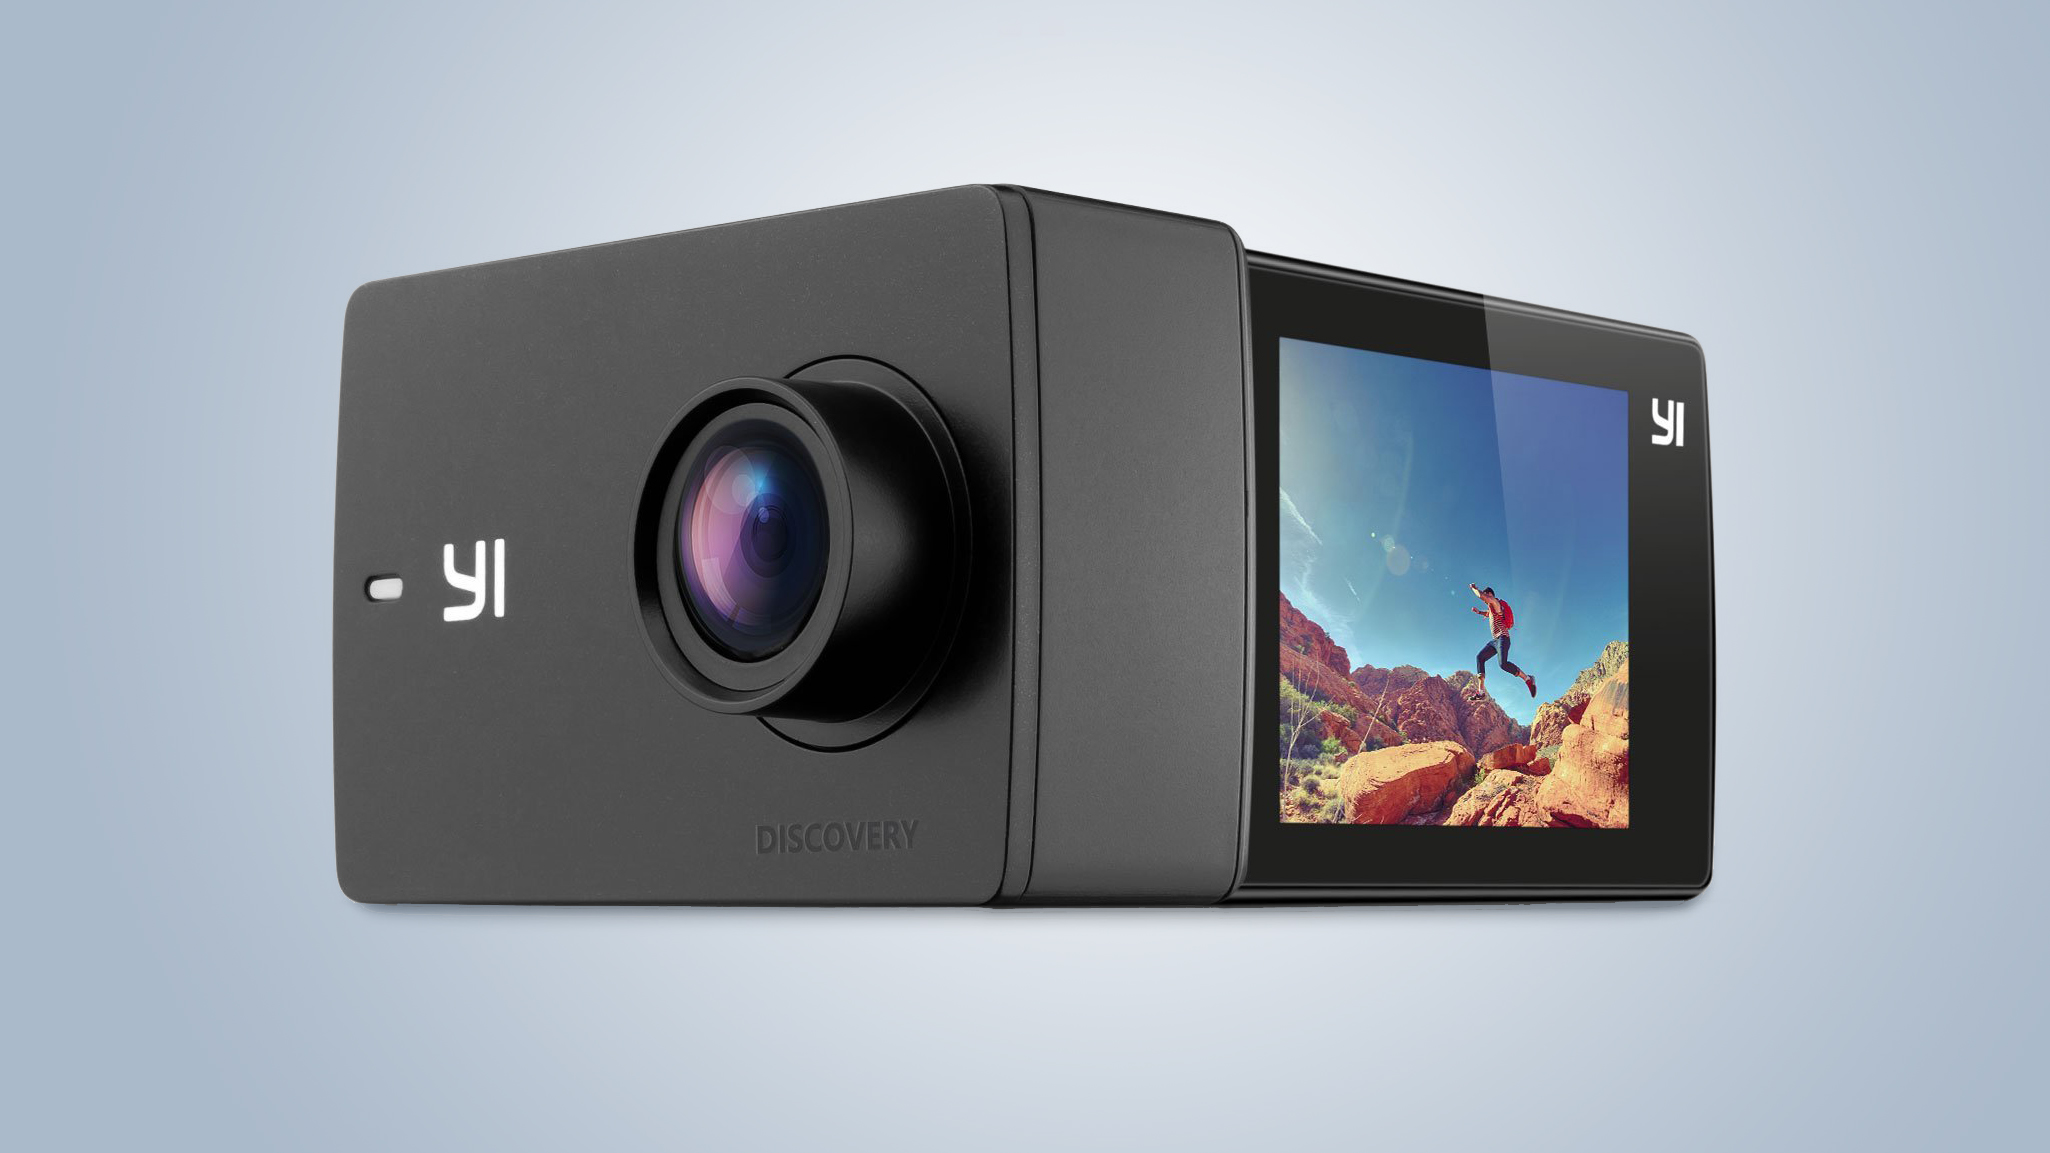 Boa Kopen Yi Discovery Action Camera Review Techradar